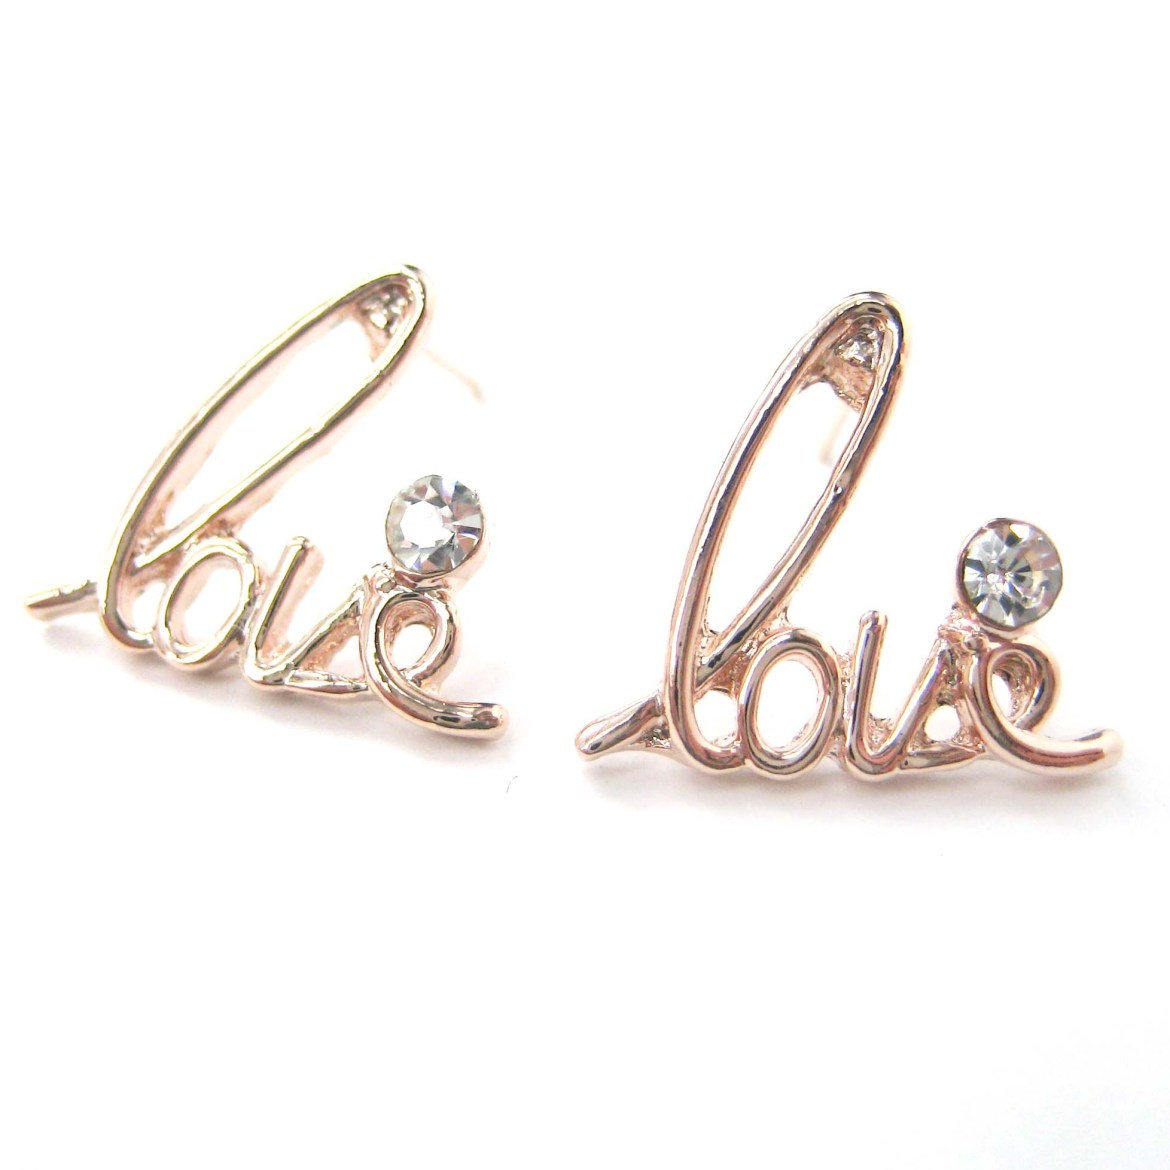 Love Cursive Stud Earrings In Light Gold With Rhinestone Details on ...